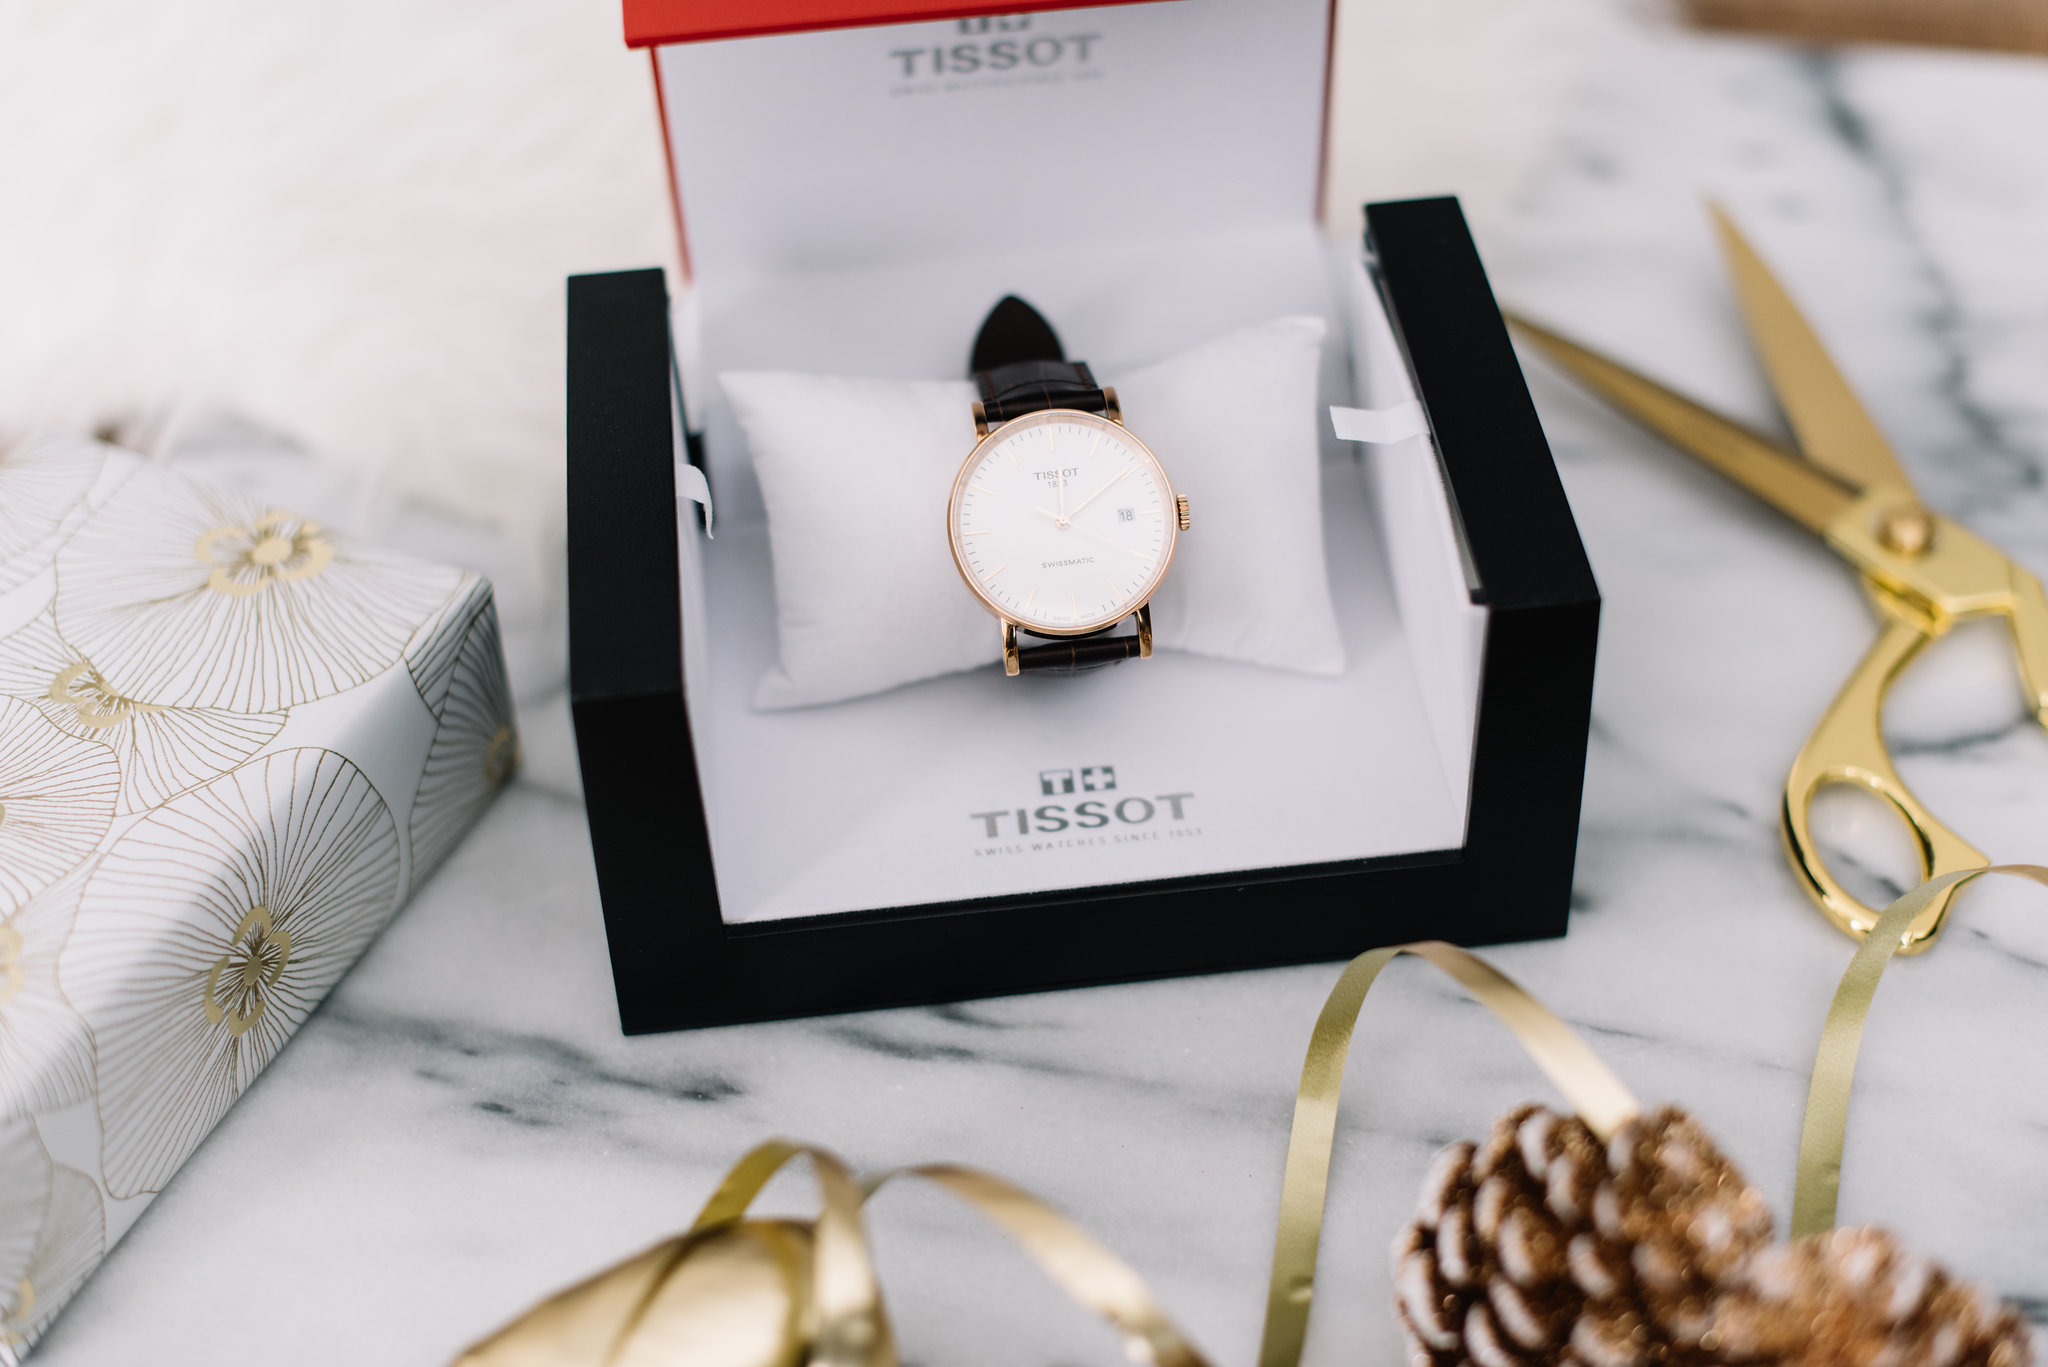 tissot watch, holiday gift for him